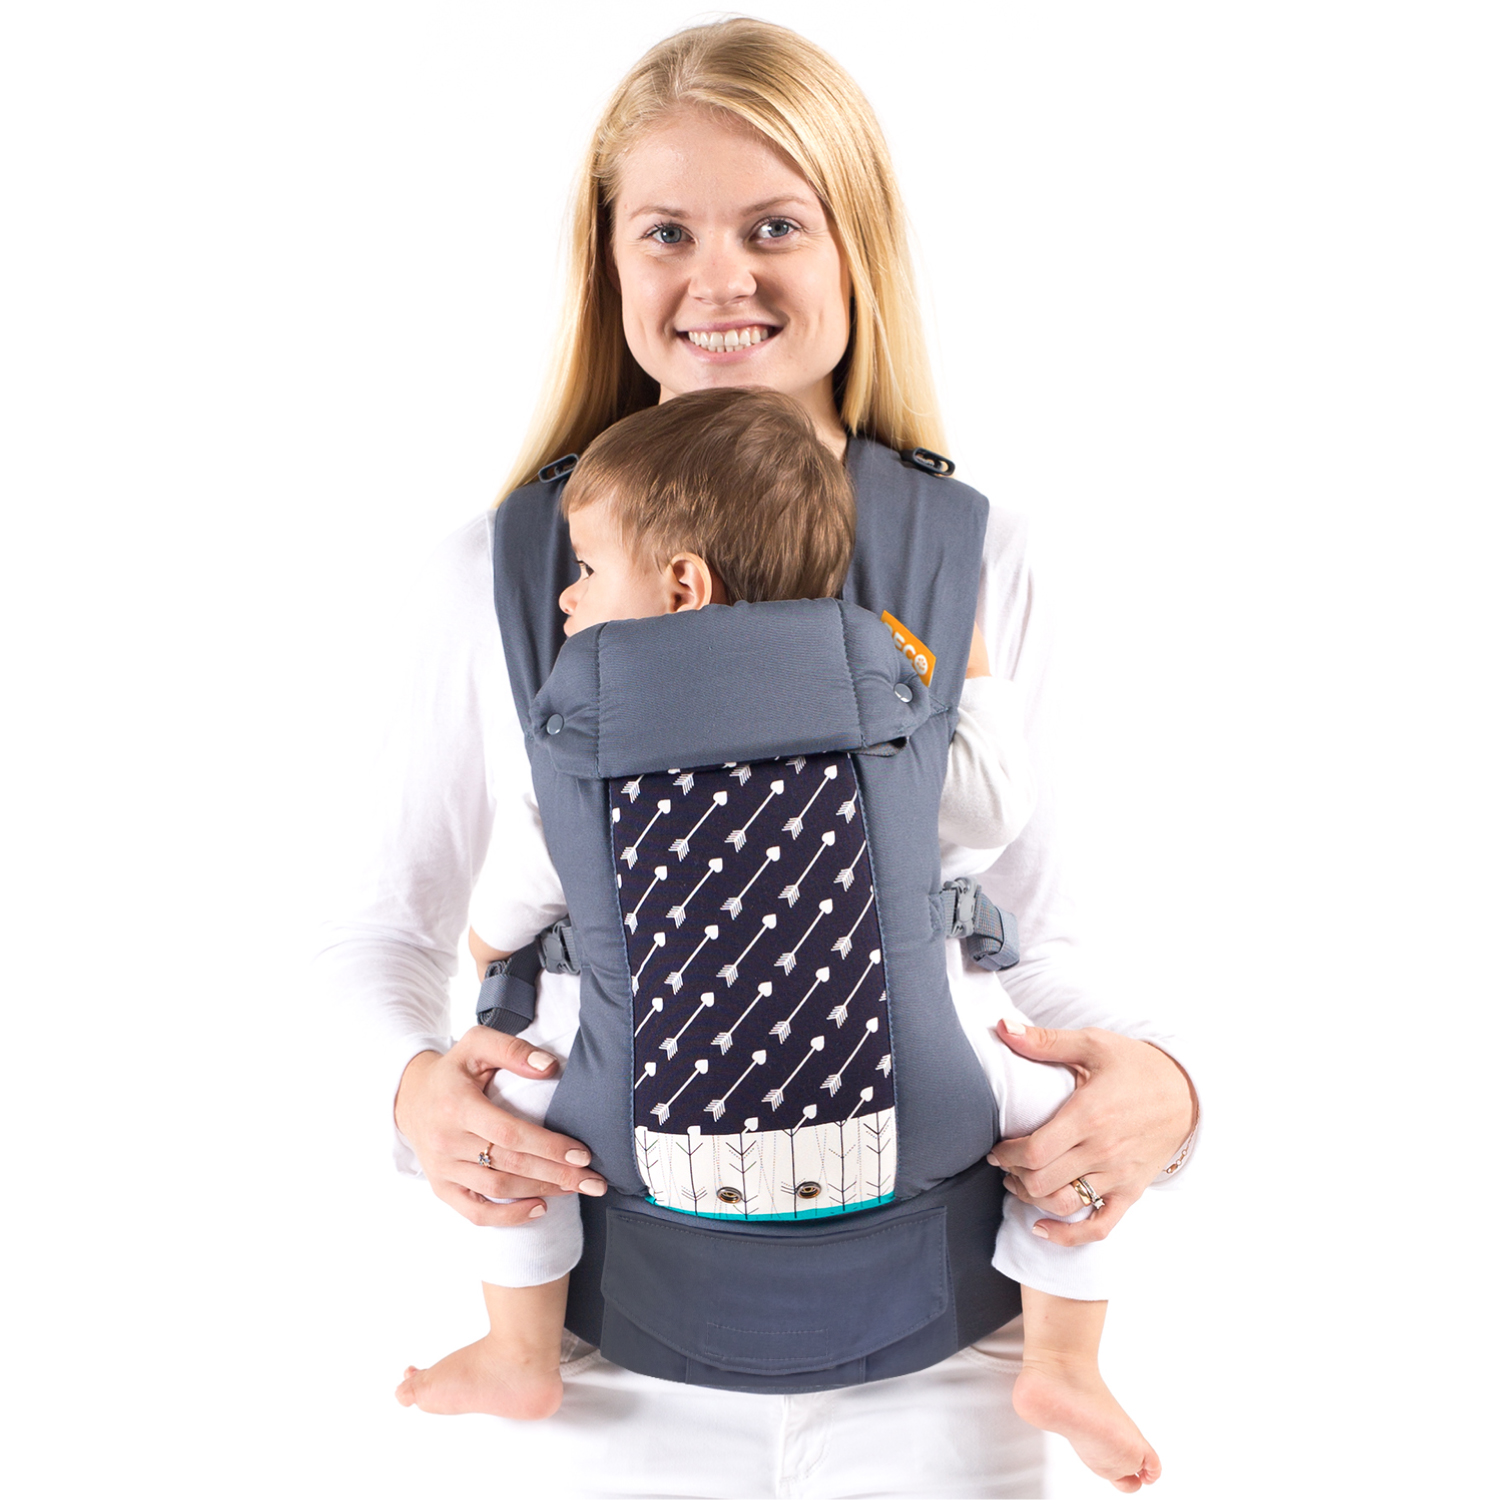 Beco Gemini Baby Carrier Review Instructions Babycarriersreviews Com